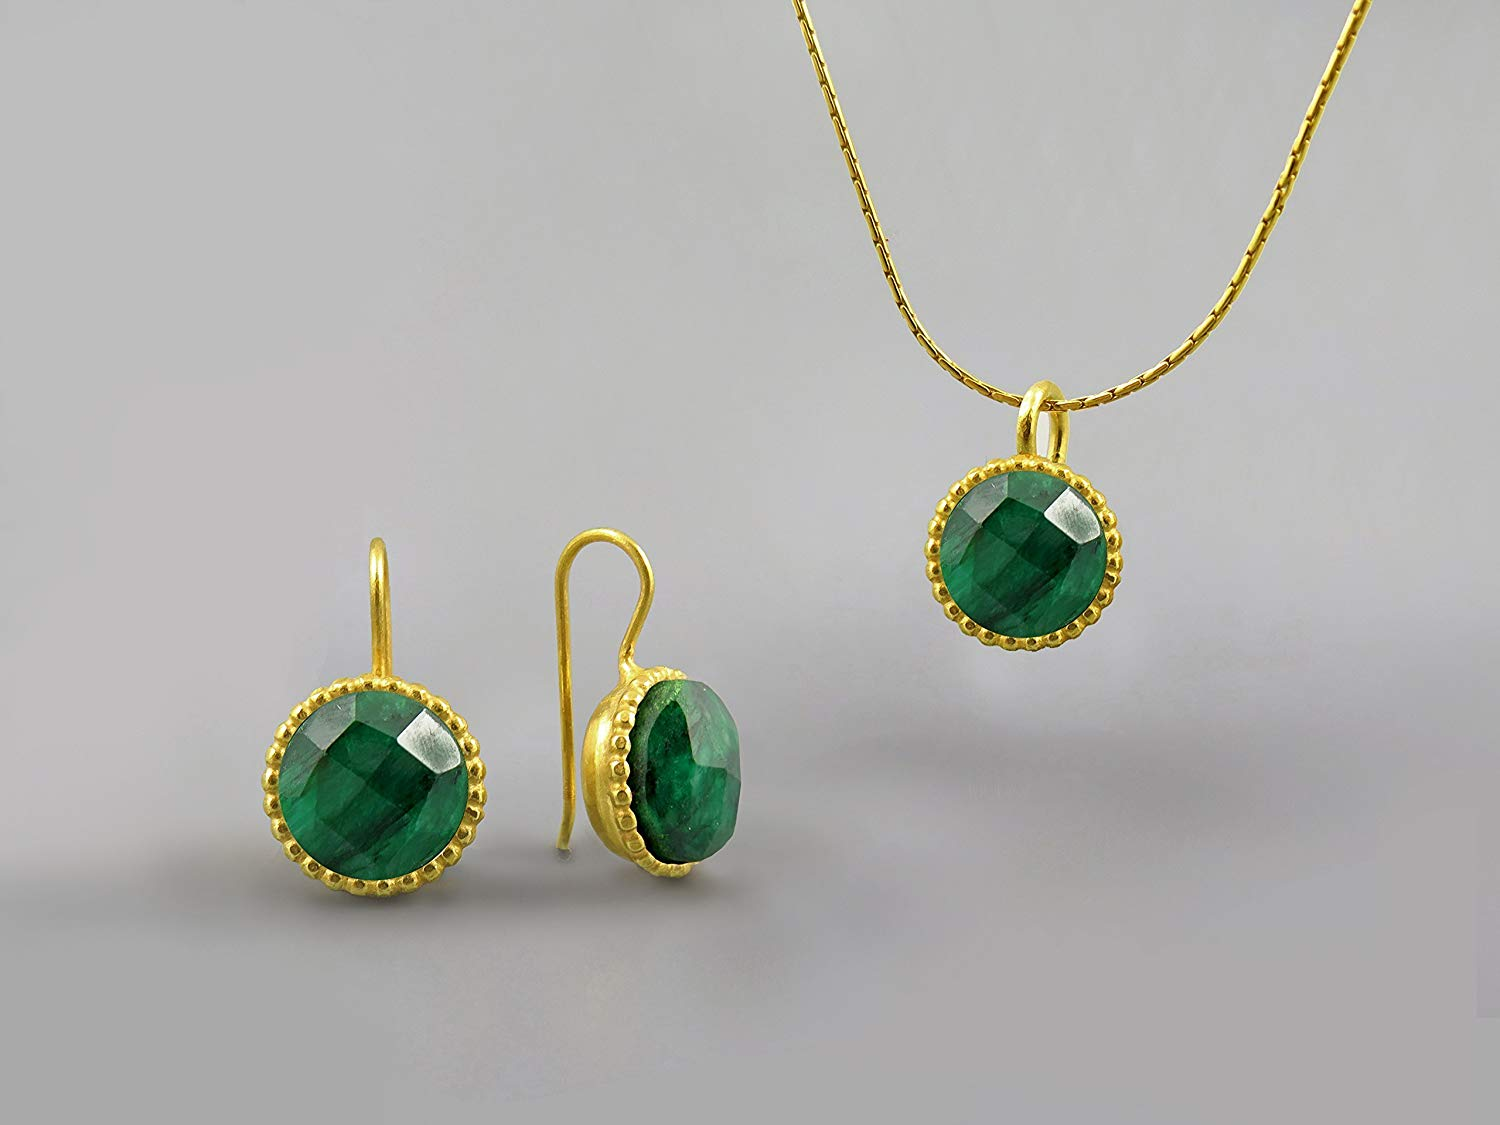 Emerald Green Gemstone Handmade Jewelry Set For Women 18 Kt Gold Plated May Birthstone Emerald Necklace Emerald Pendant Emerald Earrings Emerald Jewelry Gift for Women Large Round Stone Custom Jewelry